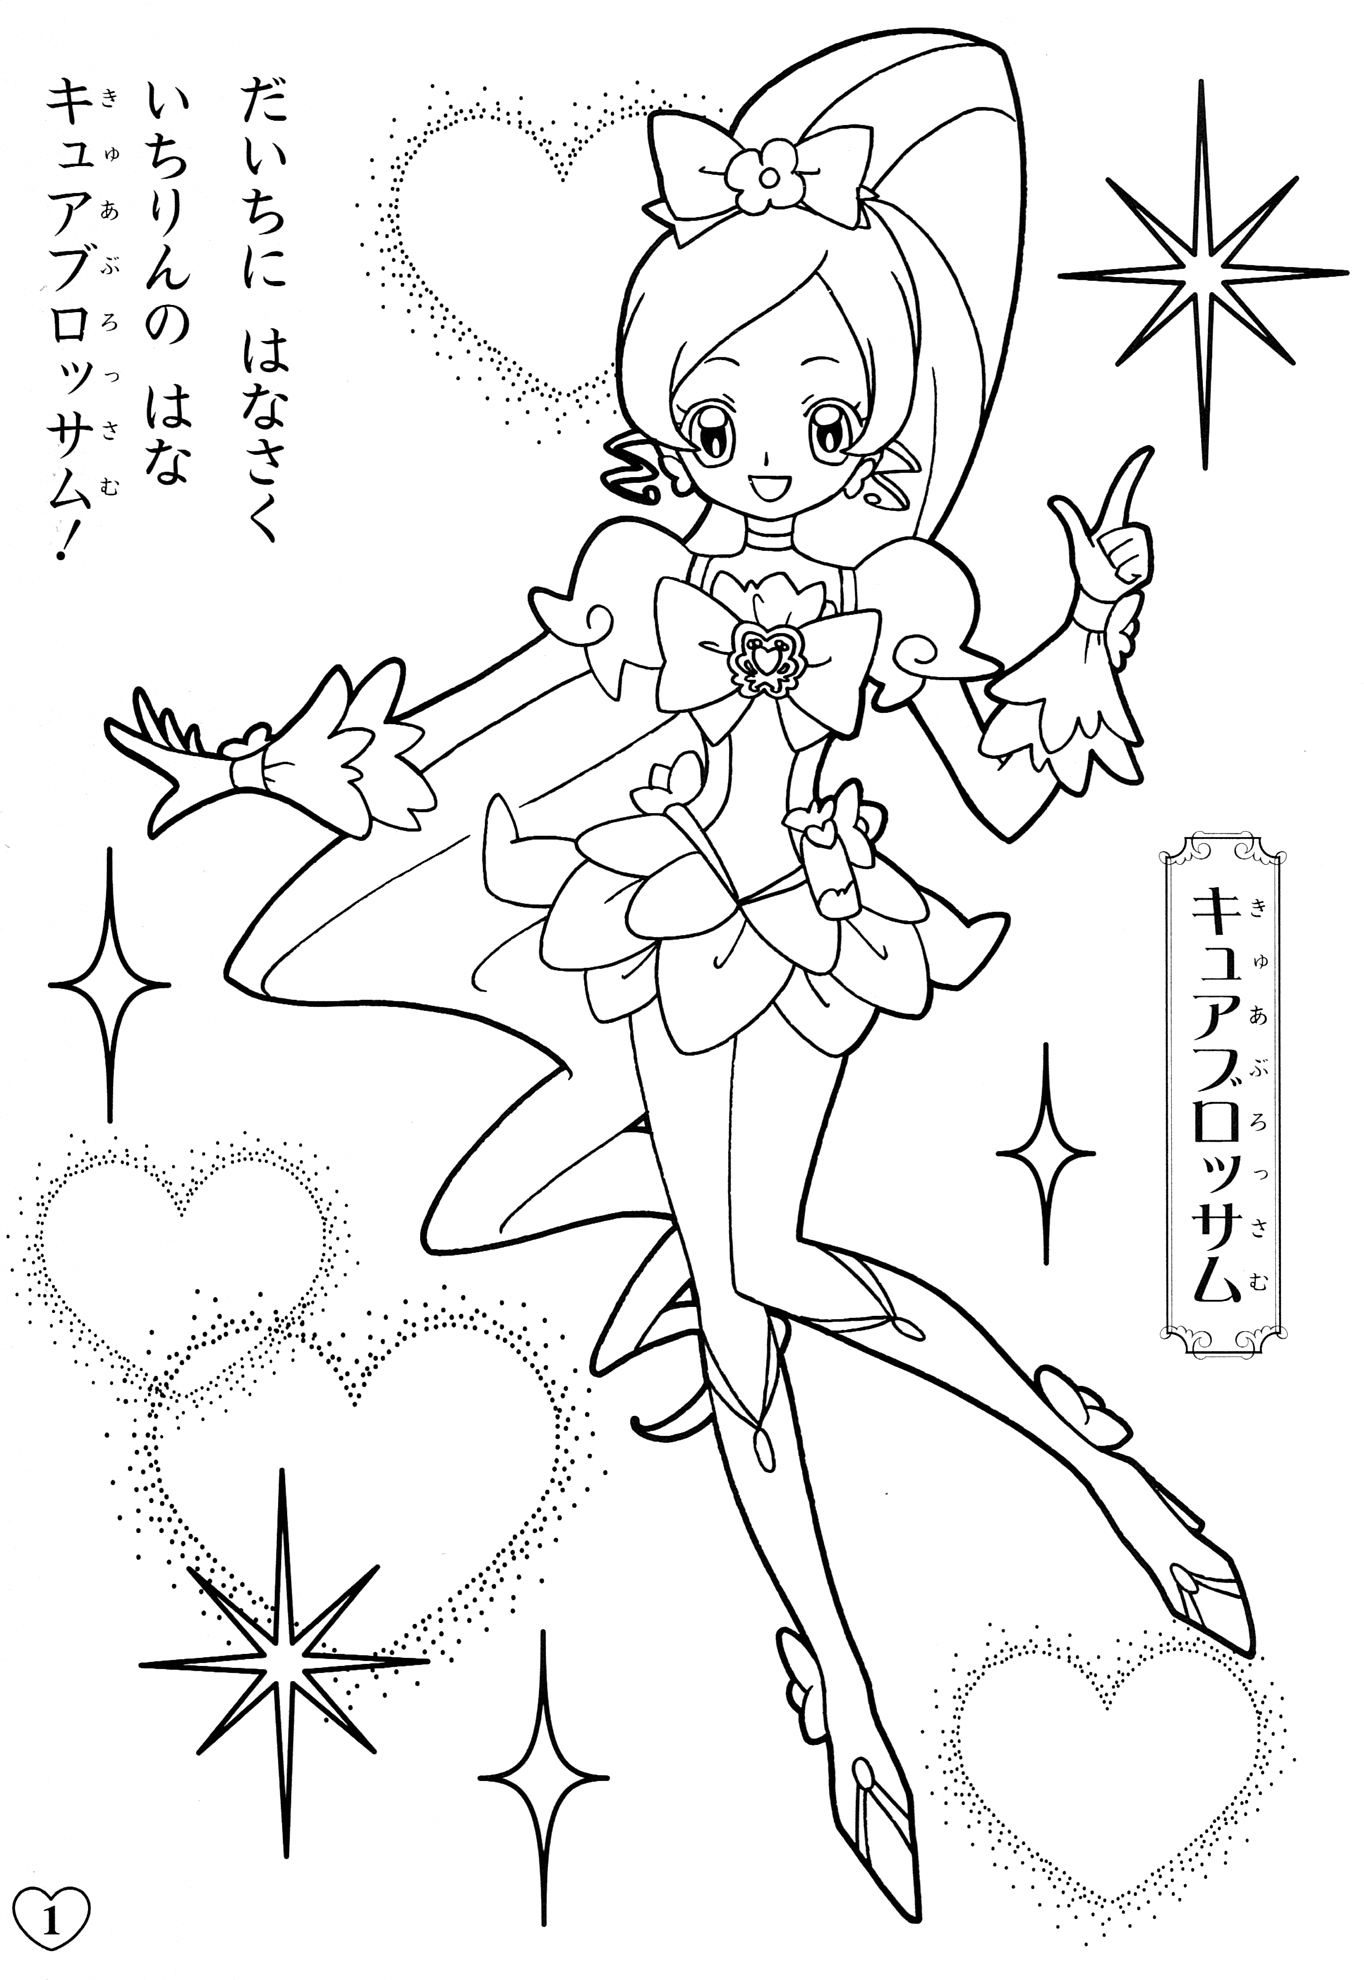 oasidelleanime precure coloring pages - photo #16